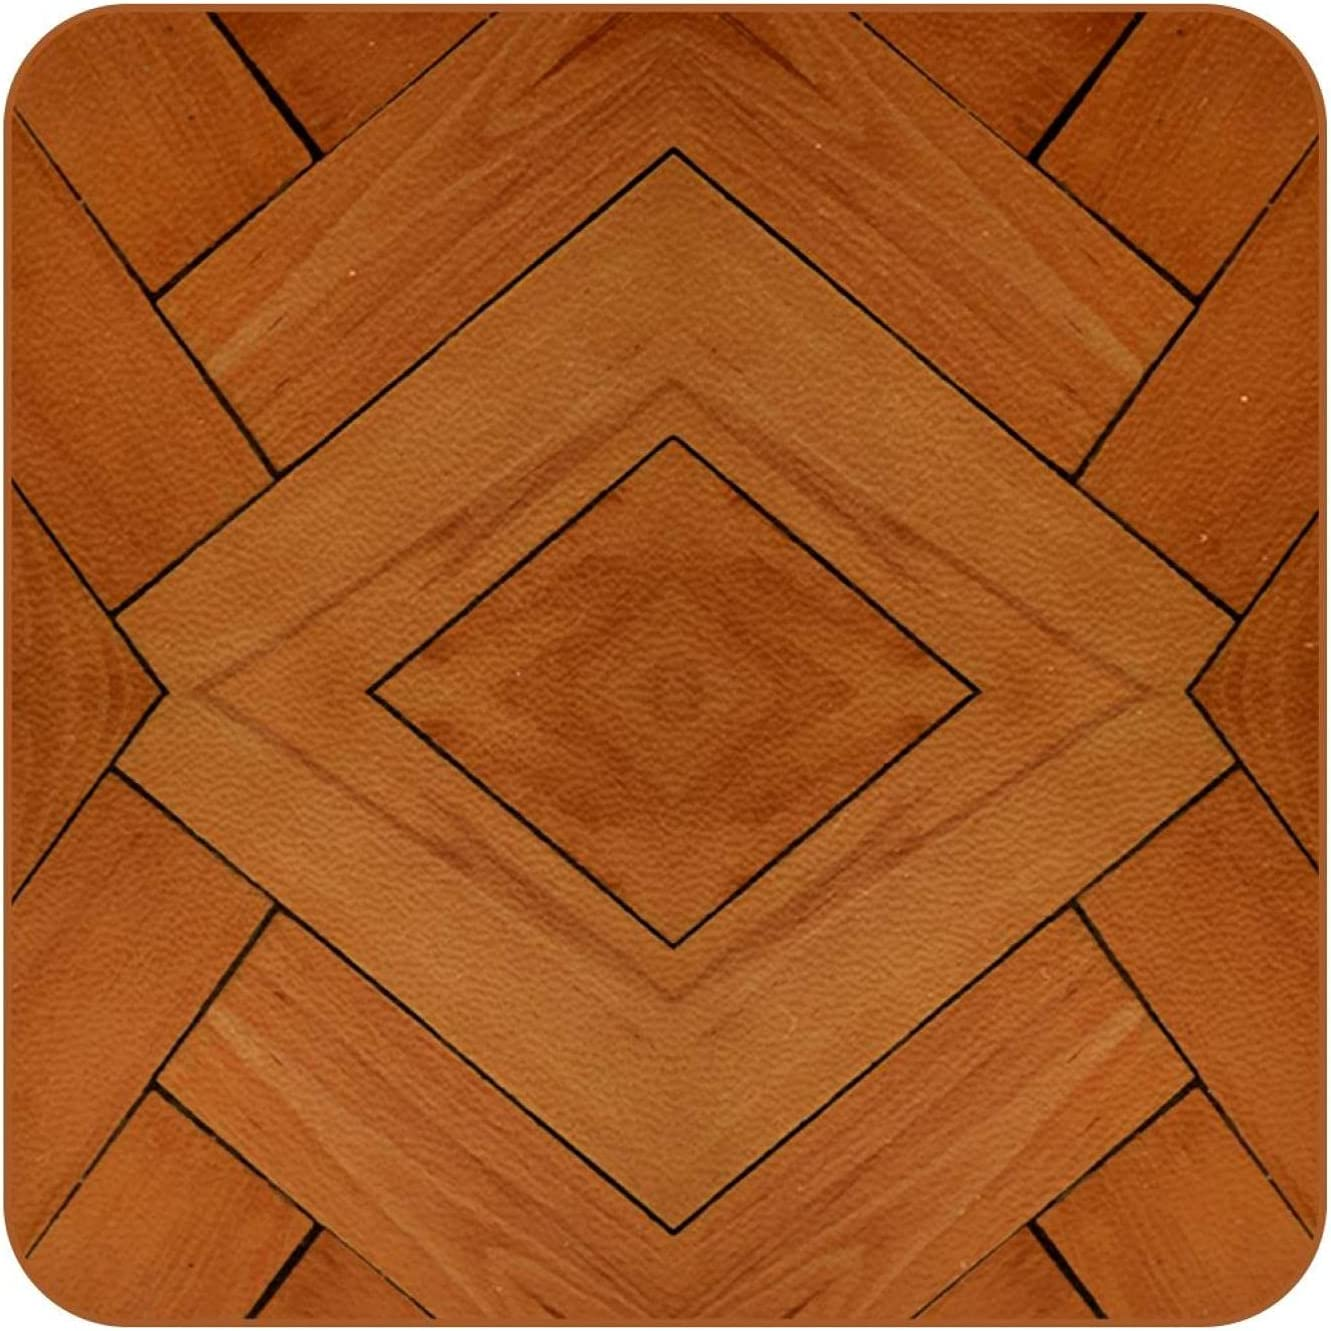 Wood Floor Background Coasters for Drinks Set of 6, Leather Square Mug Cup Pad Mat for Protect Furniture, Heat Resistant, Kitchen Bar Decor